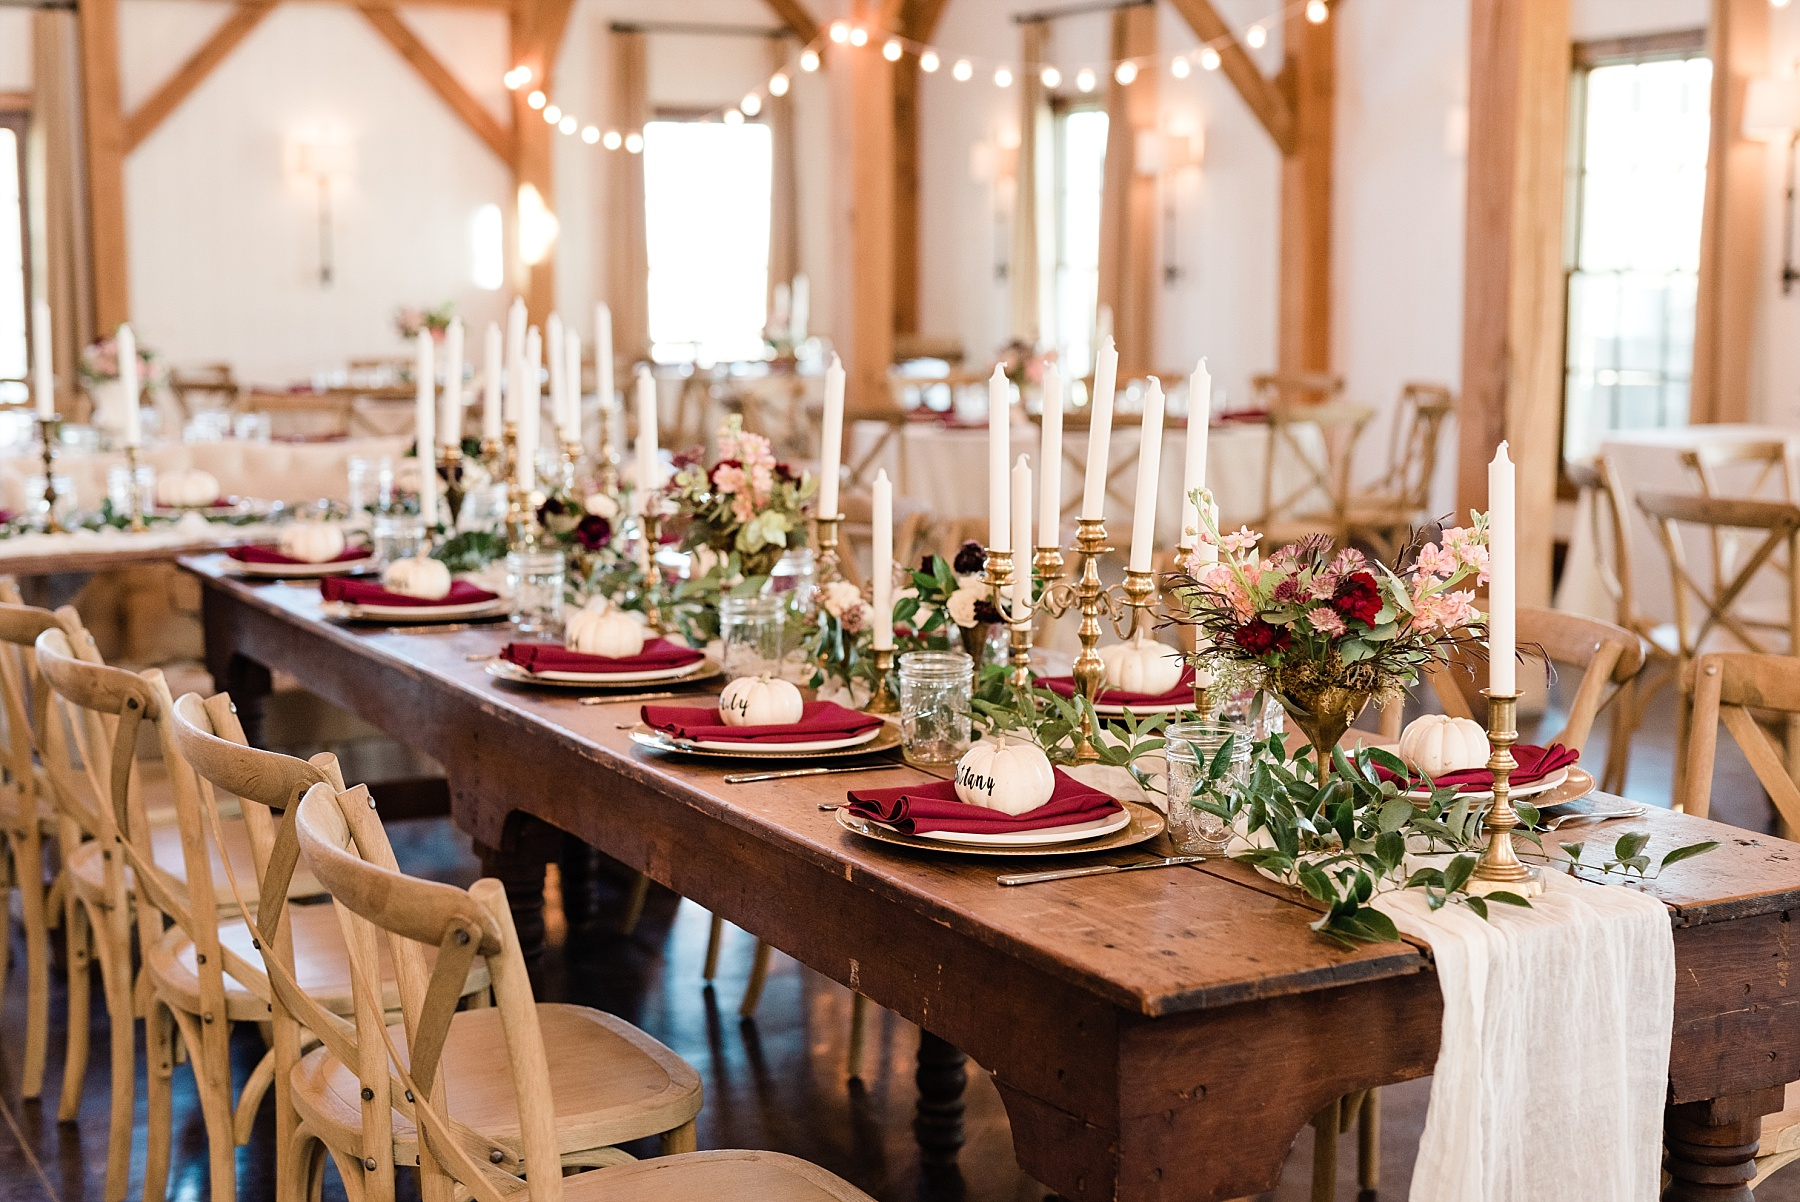 Golden Autumn Outdoor Wedding with Ivory, Bergundy, and Blush Color Palette at Blue Bell Farms  by Kelsi Kliethermes Photography_0021.jpg